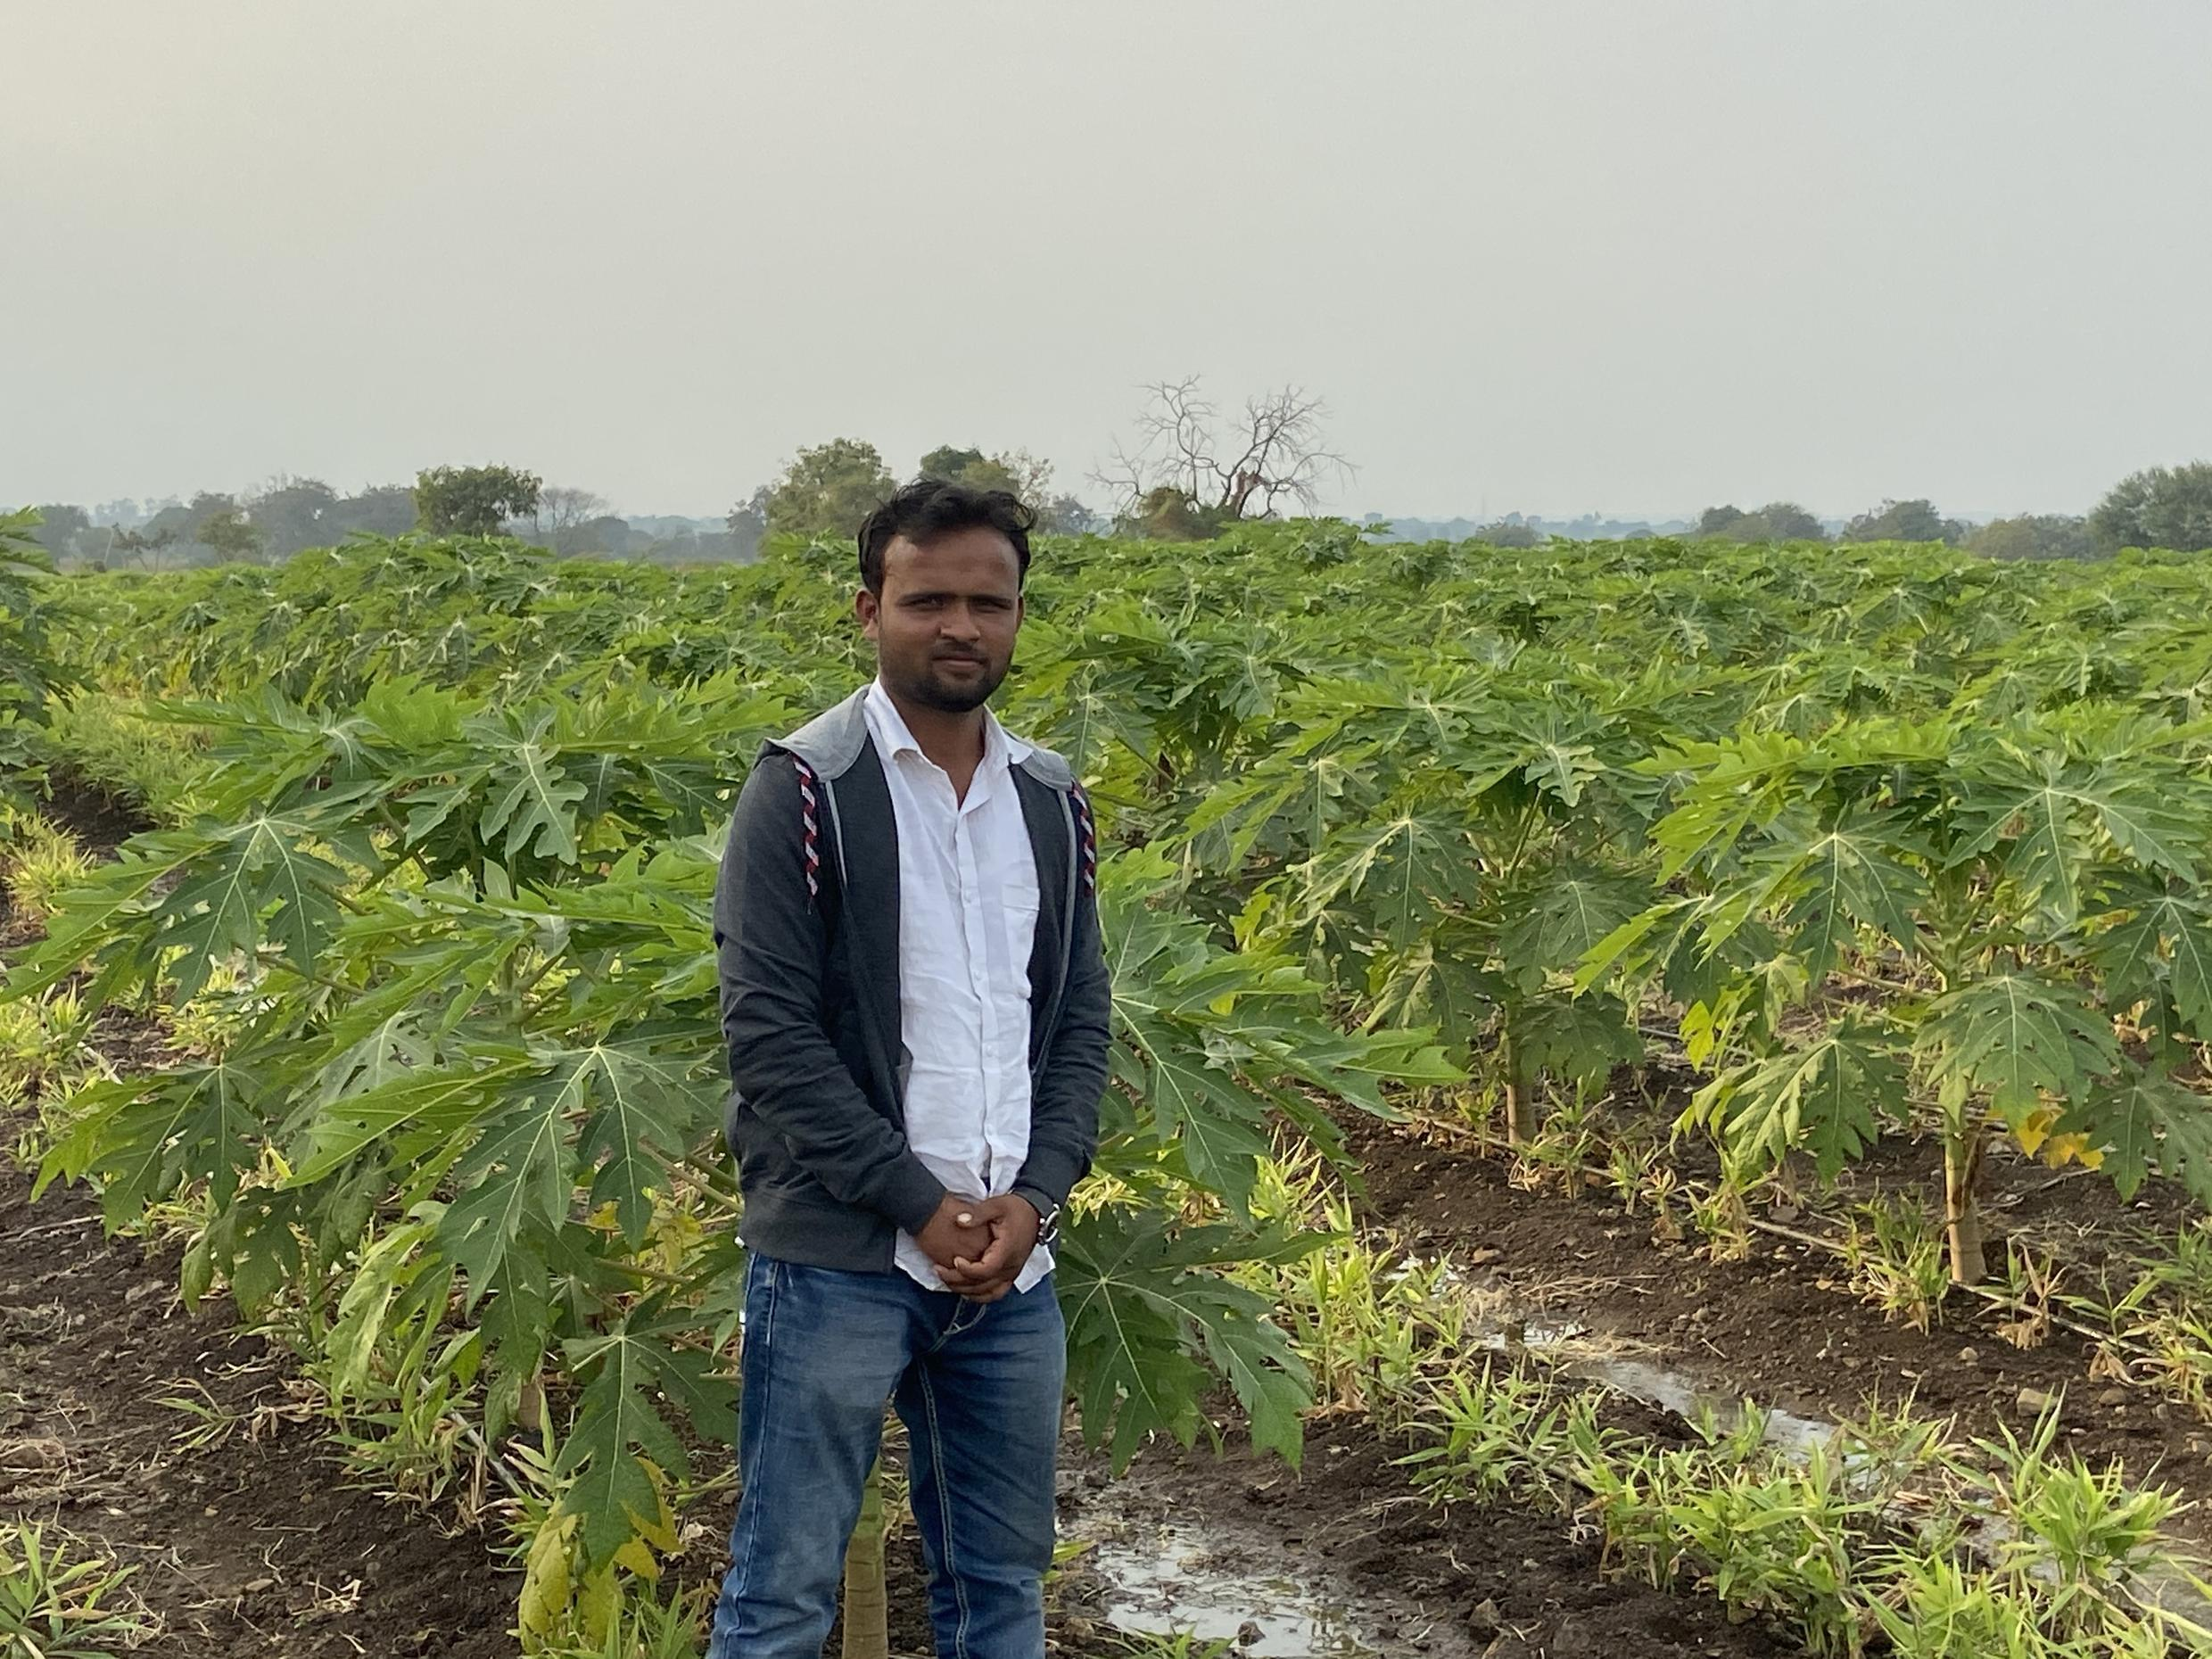 One of the farmers in Latur who is hoping for a good harvest.